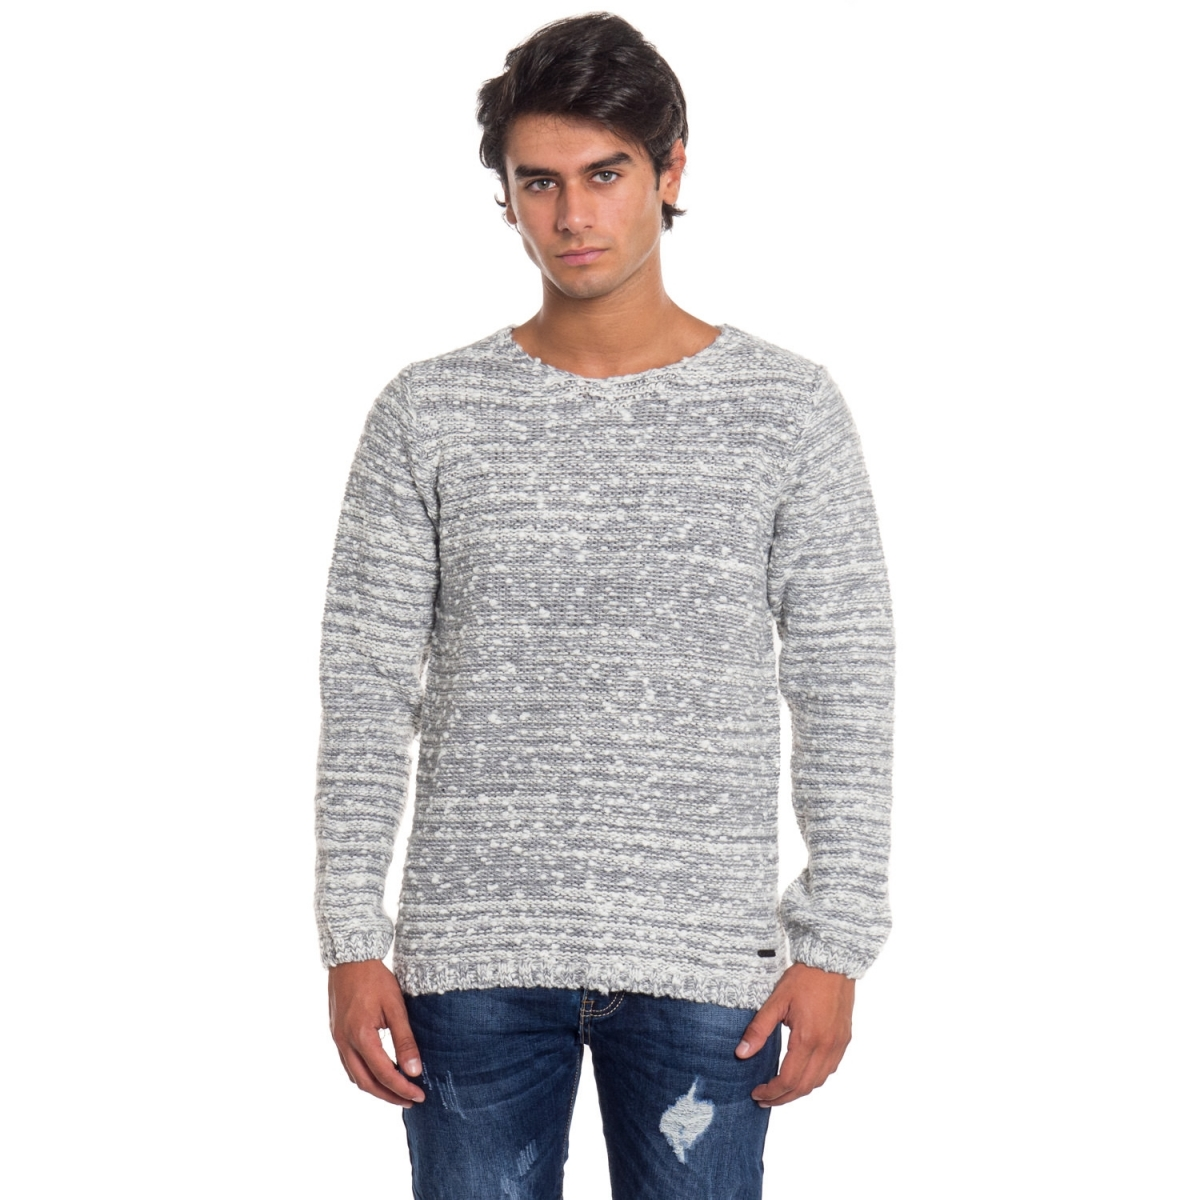 clothing Knitwears men Maglia GLBW781 GIANNI LUPO Cafedelmar Shop